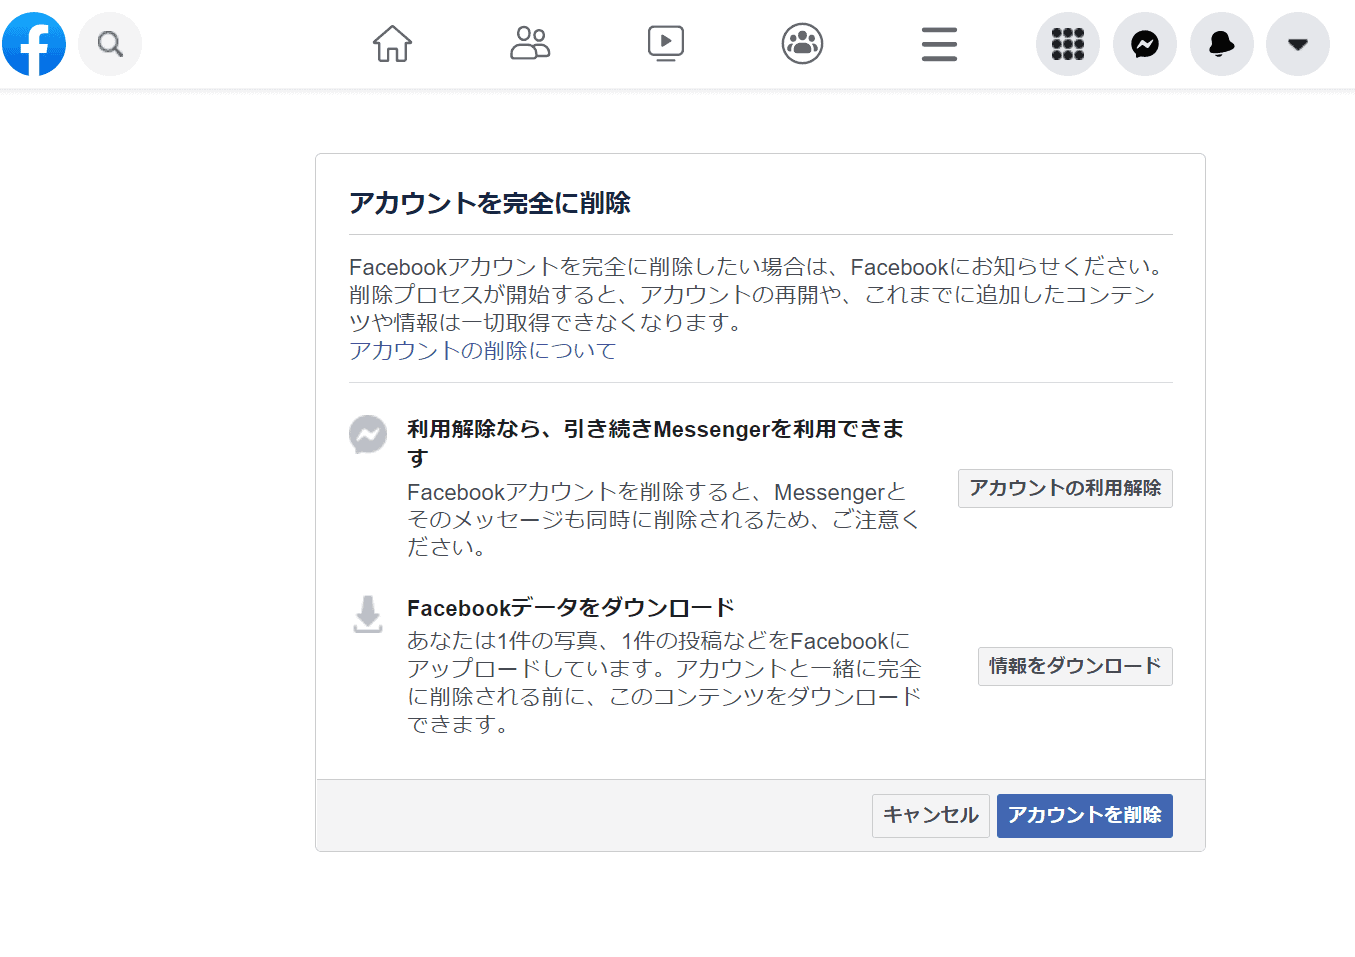 Facebookの退会ページからの退会方法,https://www.facebook.com/help/delete_account